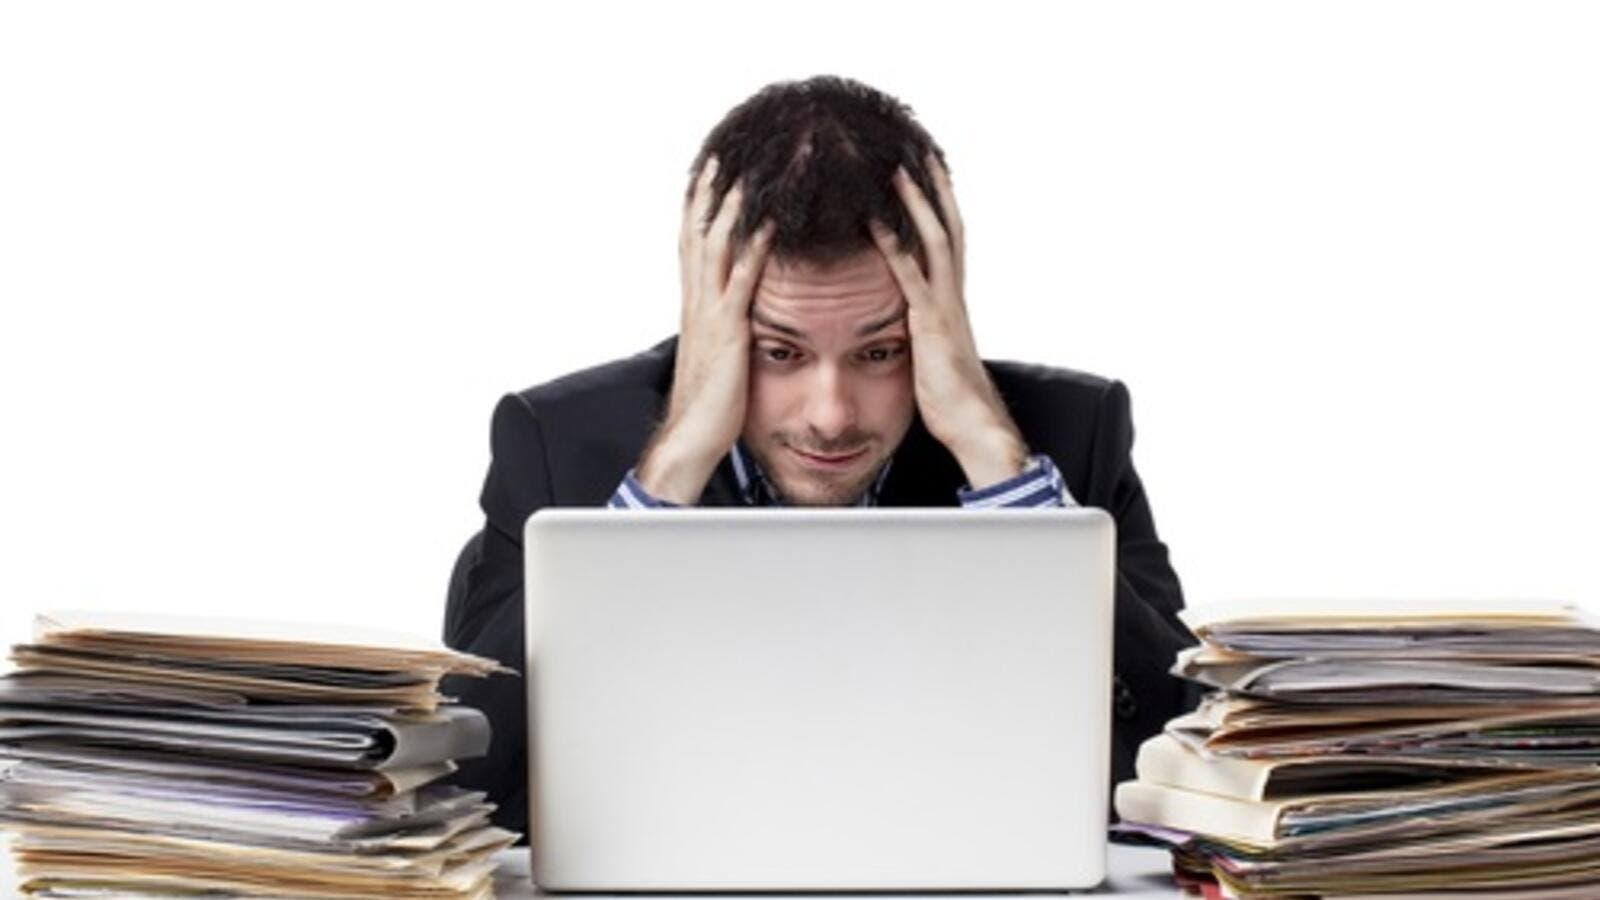 In the iIddle East, 66 percent of workers are experiencing stress-related illnesses (Shutterstock)